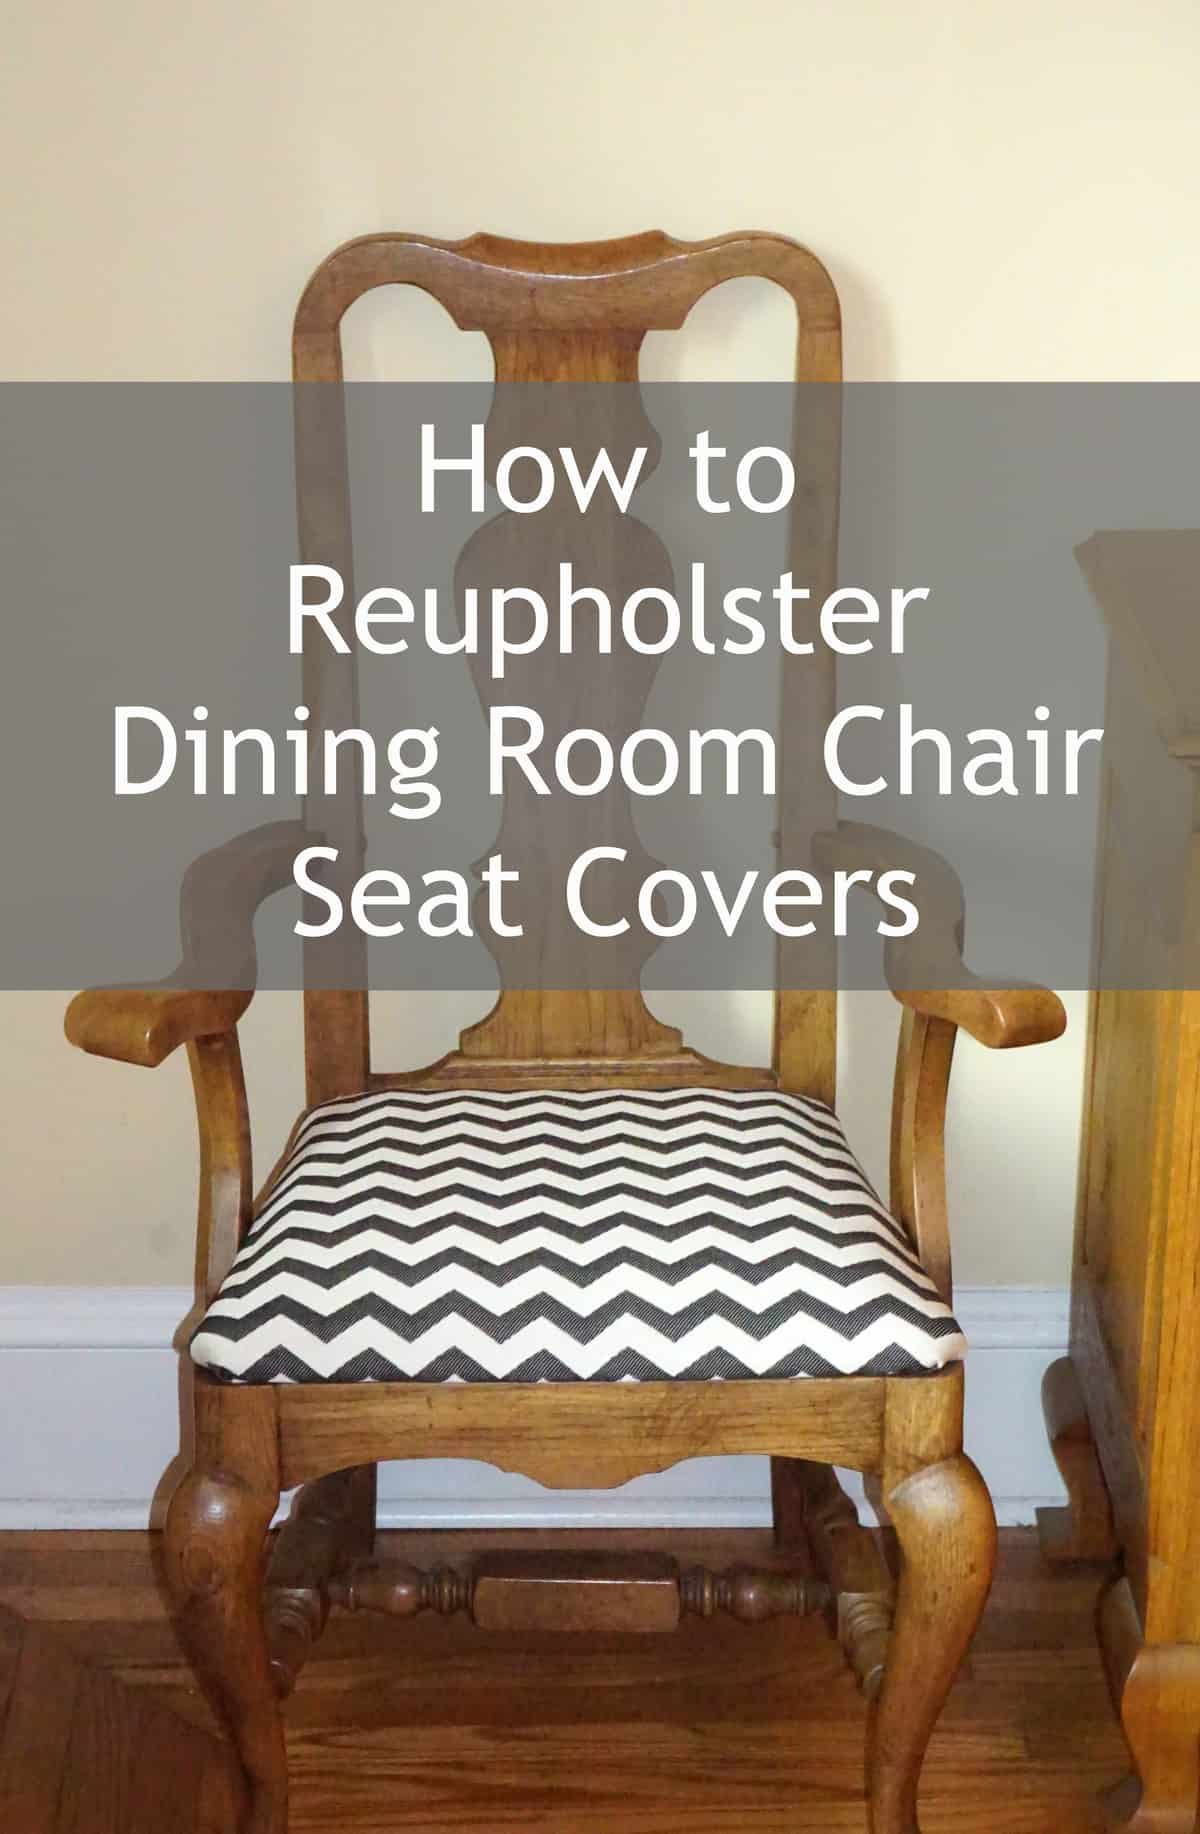 how to reuphoster dining room chair seat covers - Reupholstered Dining Room Chairs